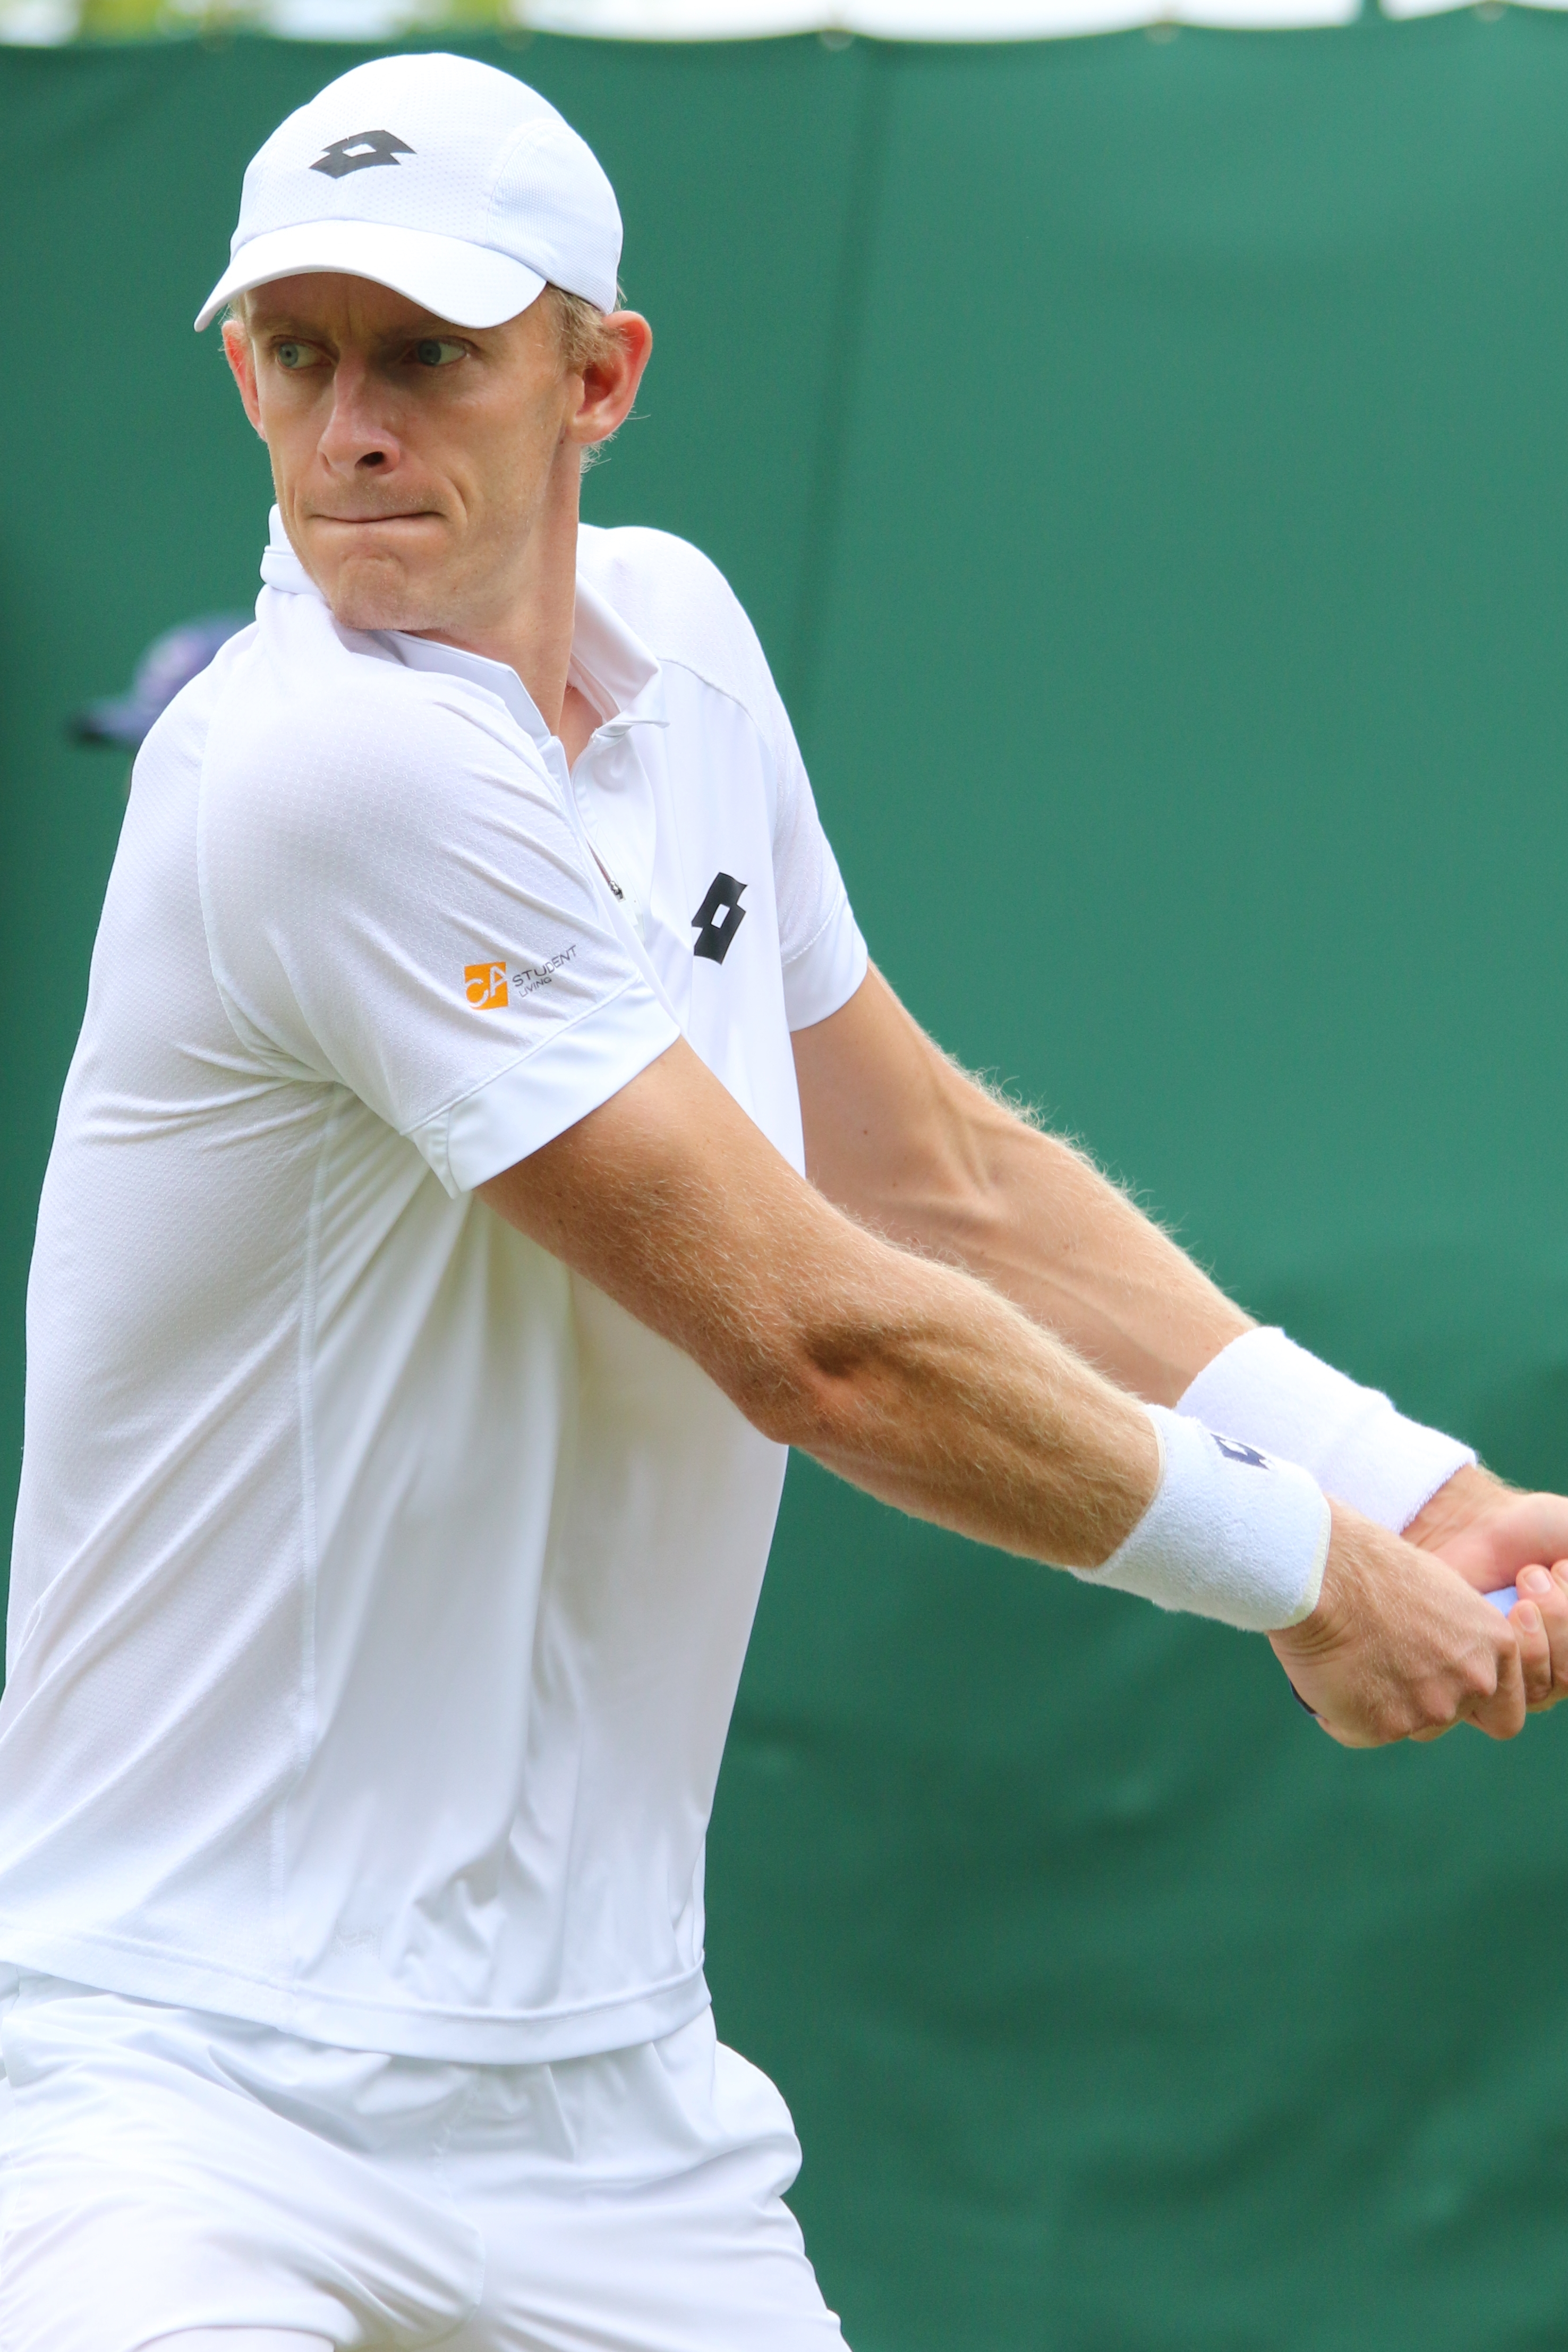 Kevin Anderson Tennis Wikipedia